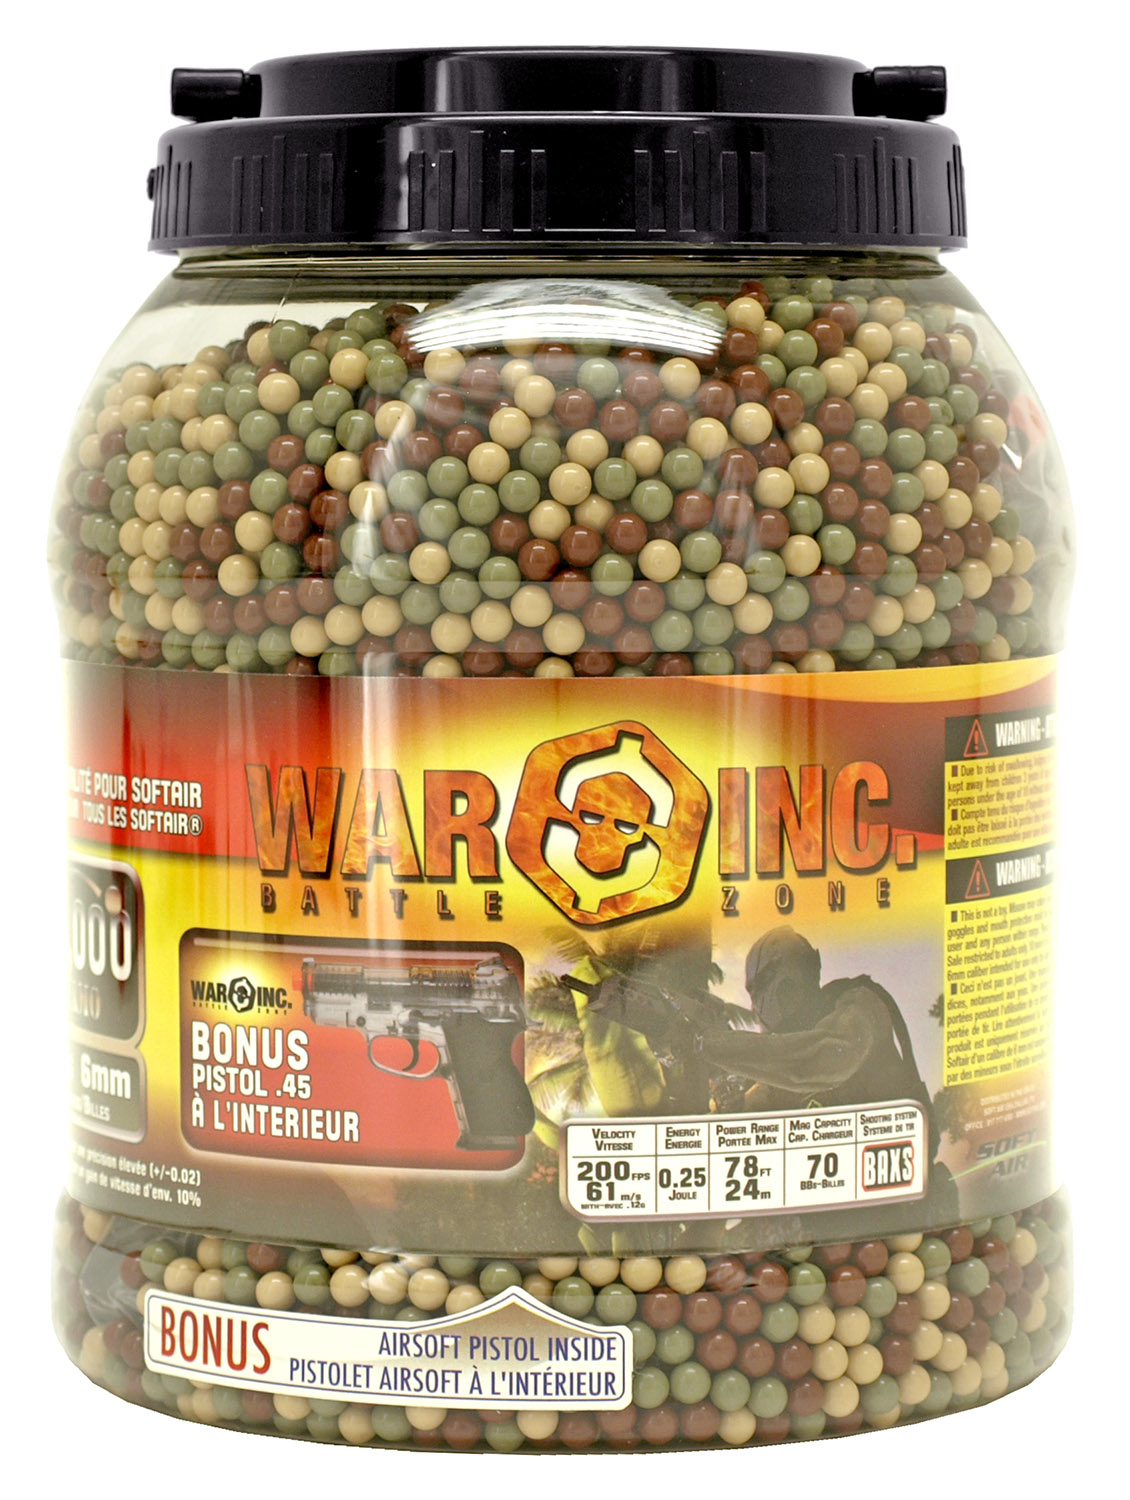 14,000 - pc. War Inc. .12g Premium 6mm Airsoft BB's